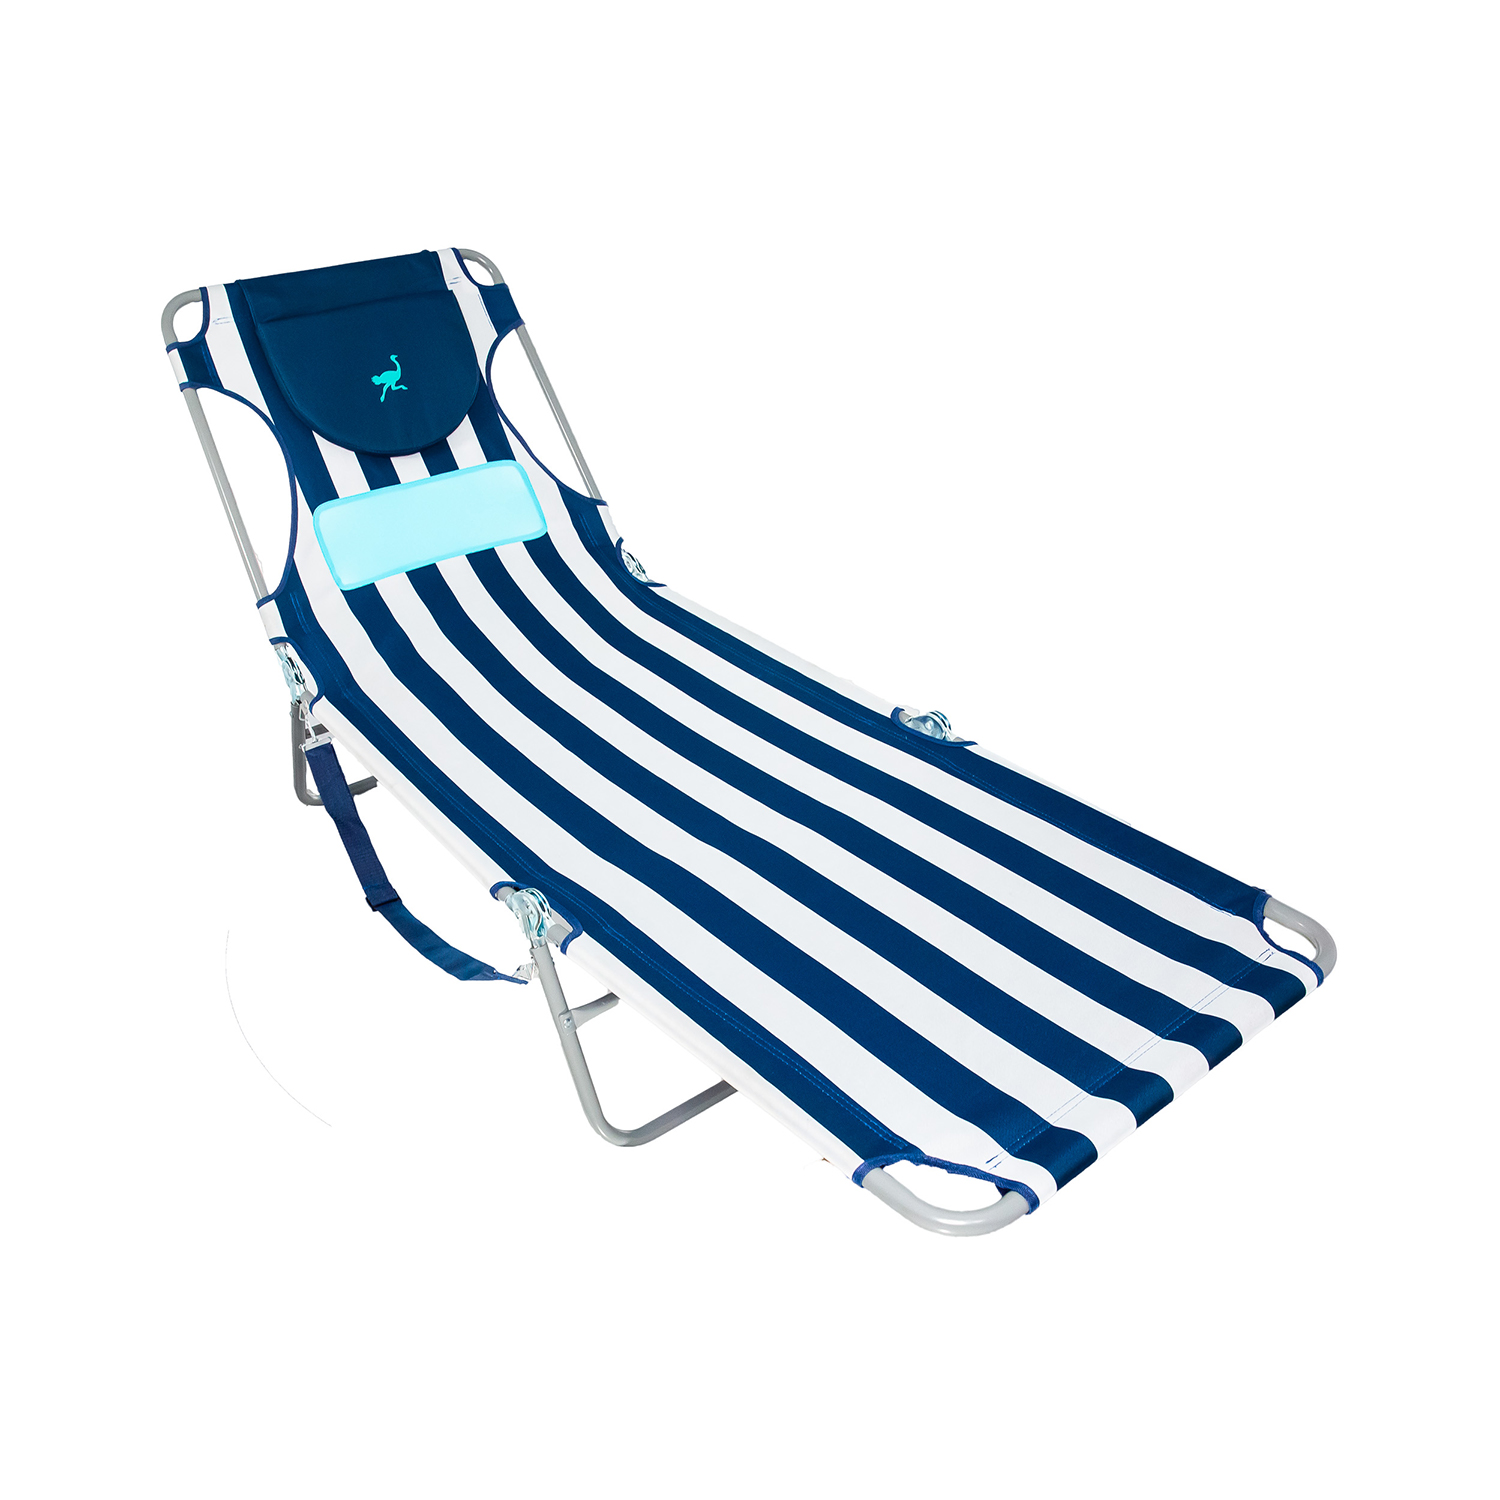 Ostrich Comfort Lounger Face Down Sunbathing Chaise Lounge